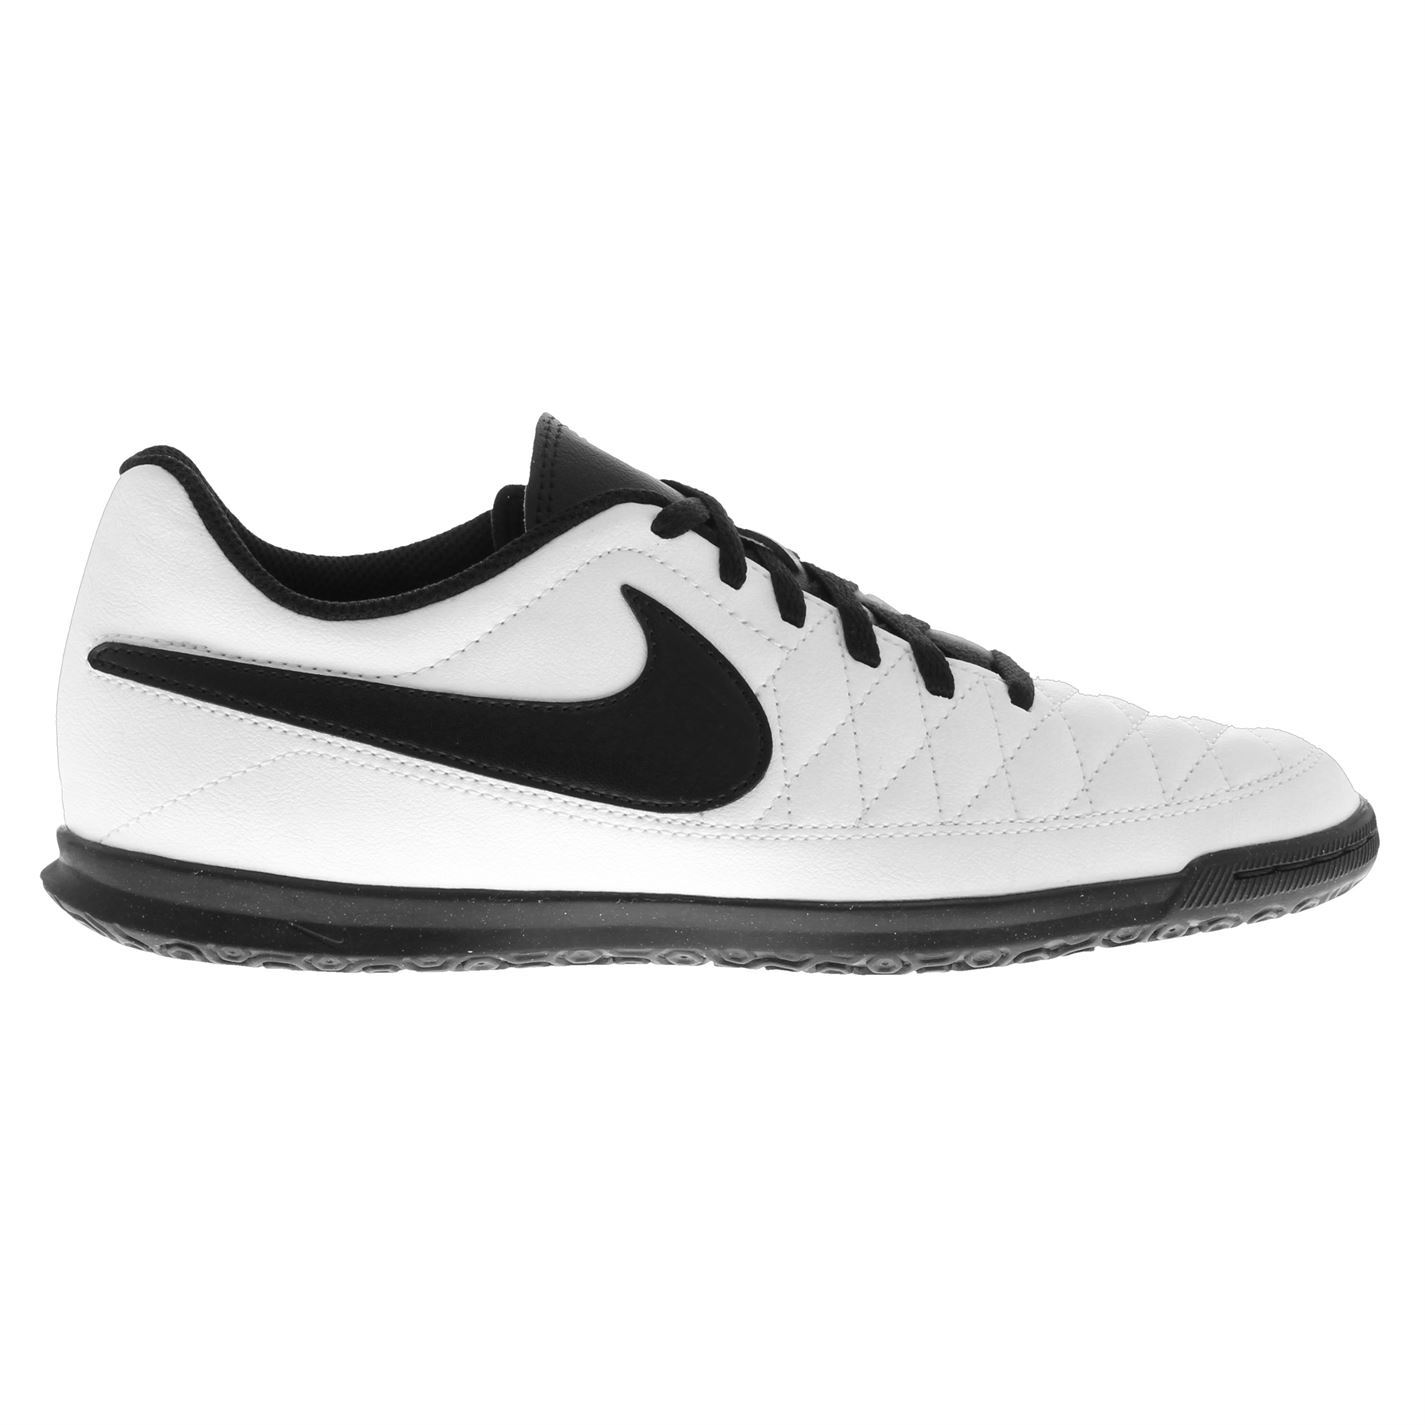 Nike-majestry-Indoor-Football-Baskets-Pour-Homme-Football-Futsal-Chaussures-Baskets-Bottes miniature 32